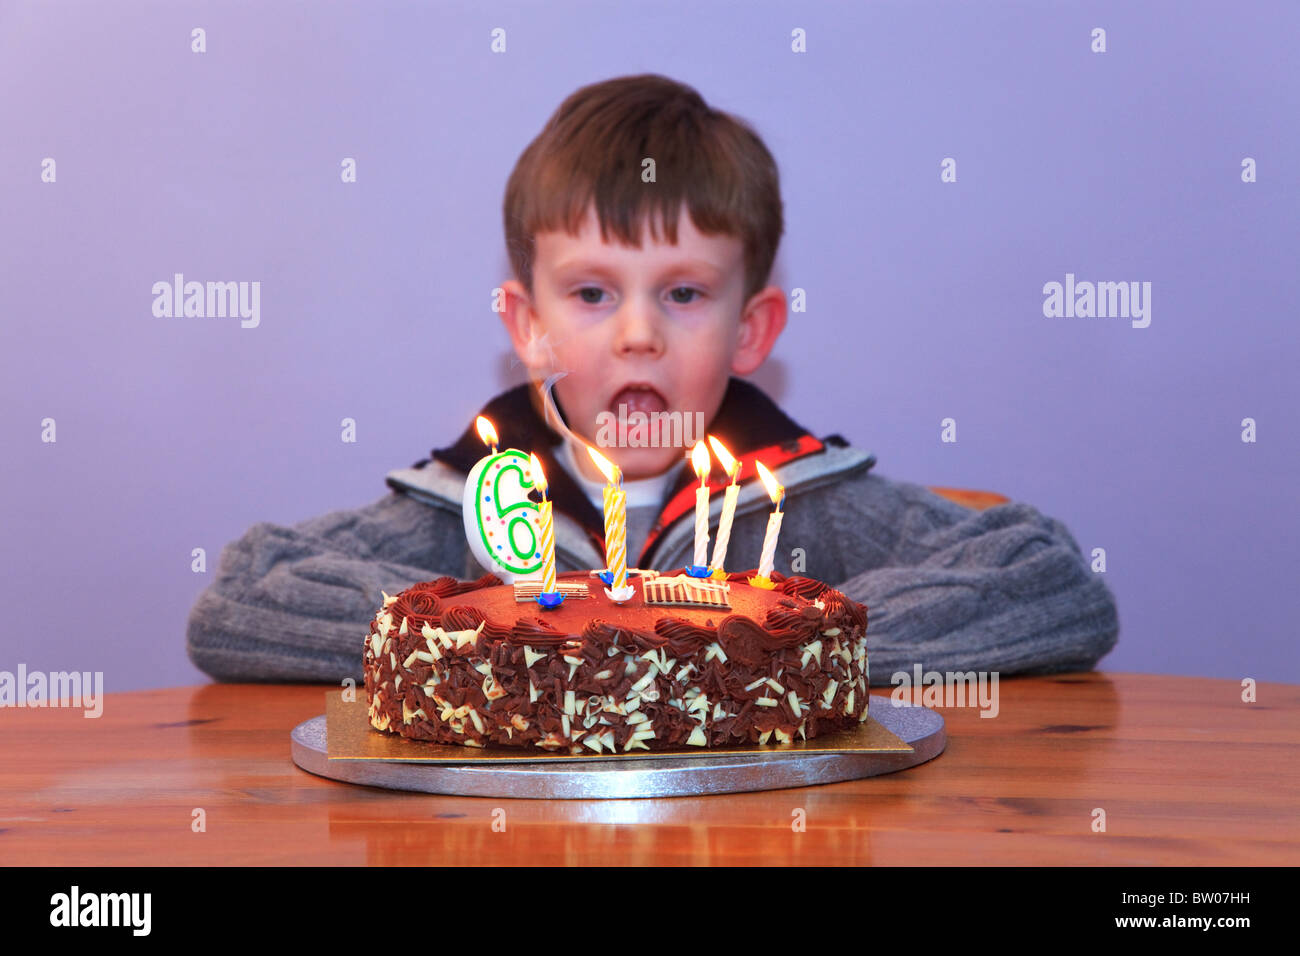 Birthday Cake Images For 6 Year Old Boy : A 6 year old boy looking at the candles on his birthday ...